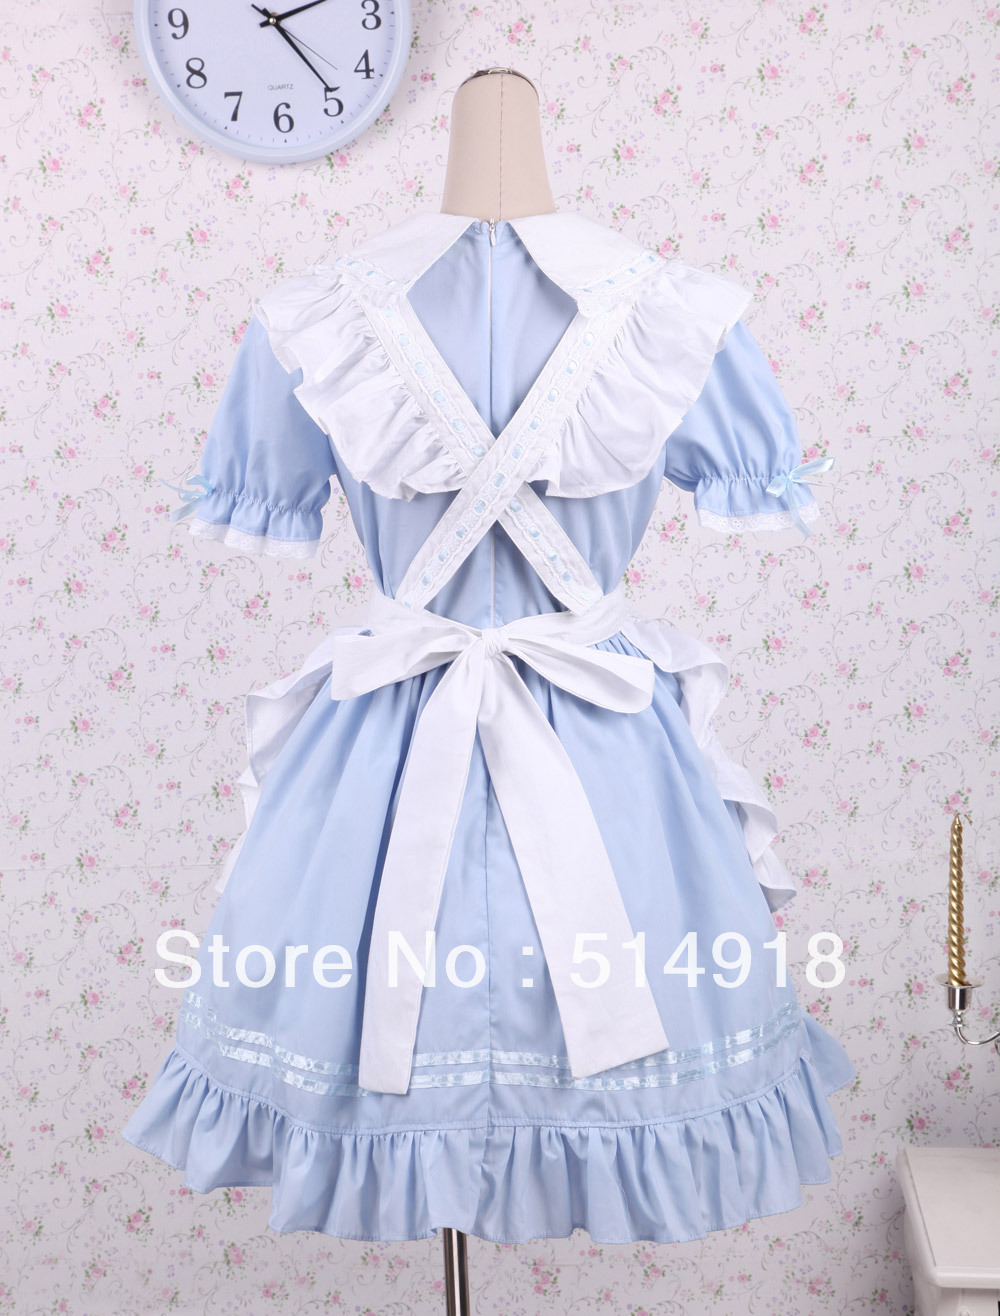 White apron in store -  Tomsuit Blue And White Short Sleeve Turndown Collar Ruffle Sweet School Lolita Dress With White Apron